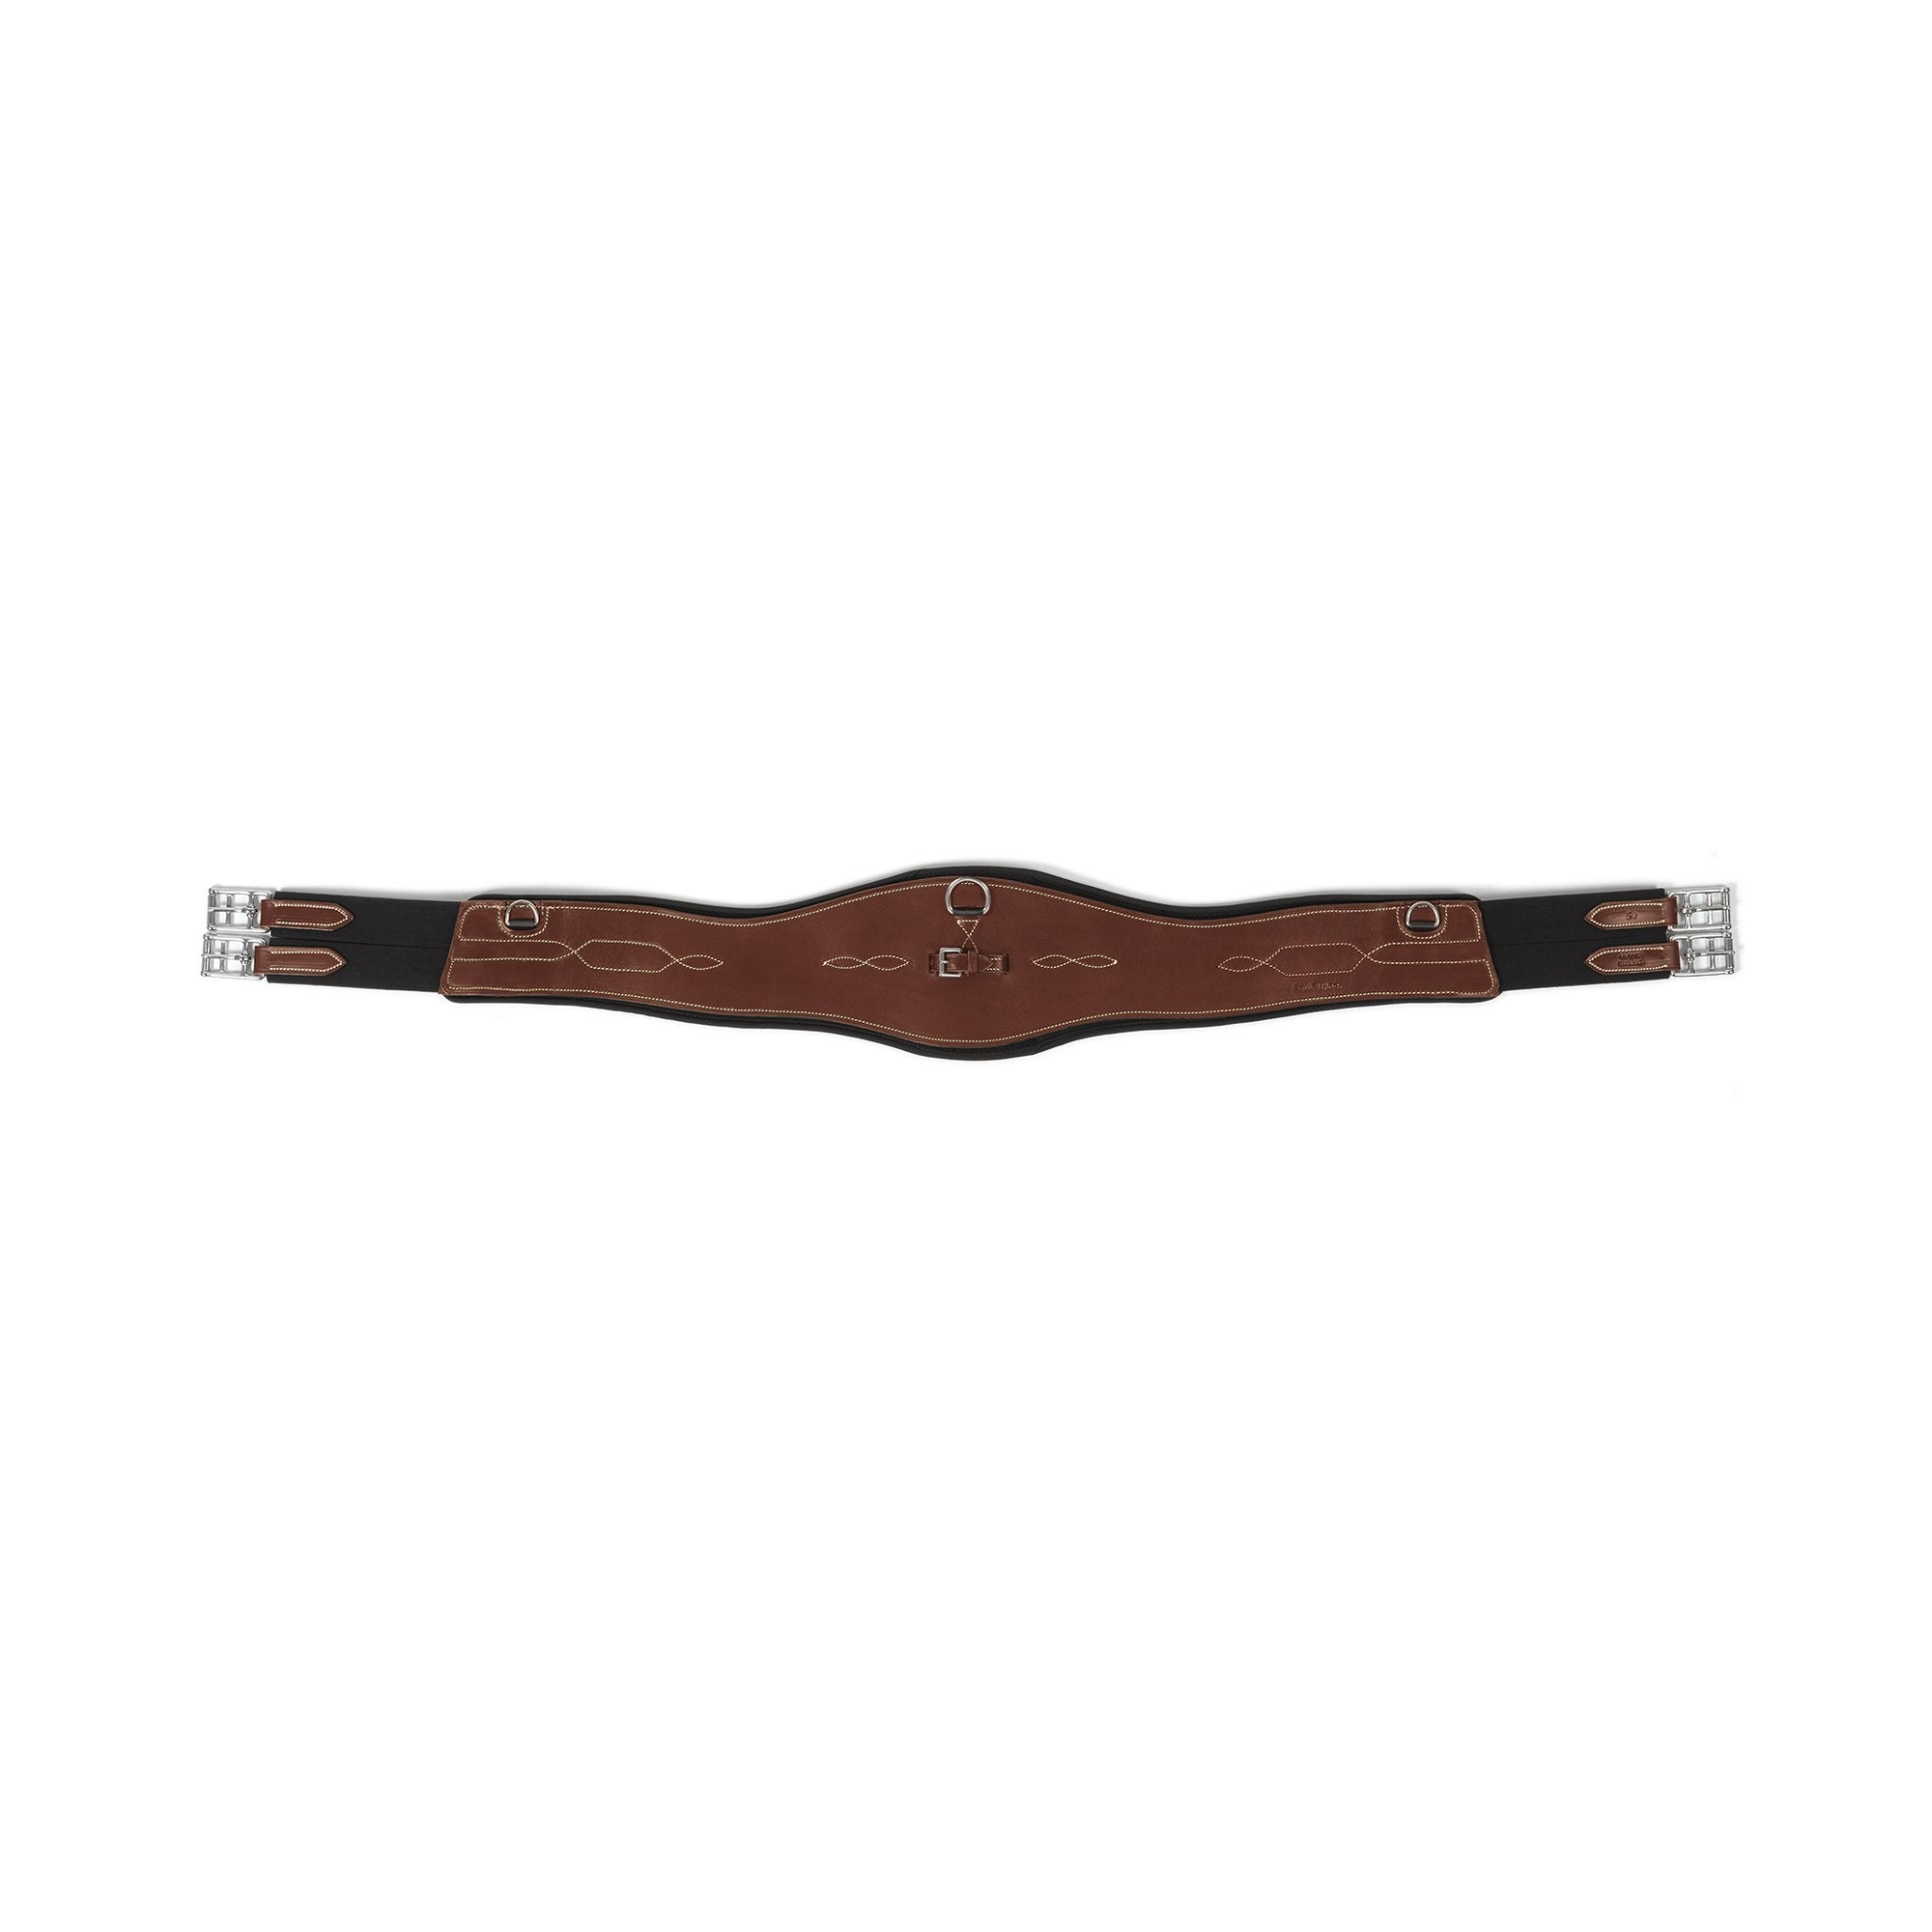 Equifit Anatomical Jumper Girth